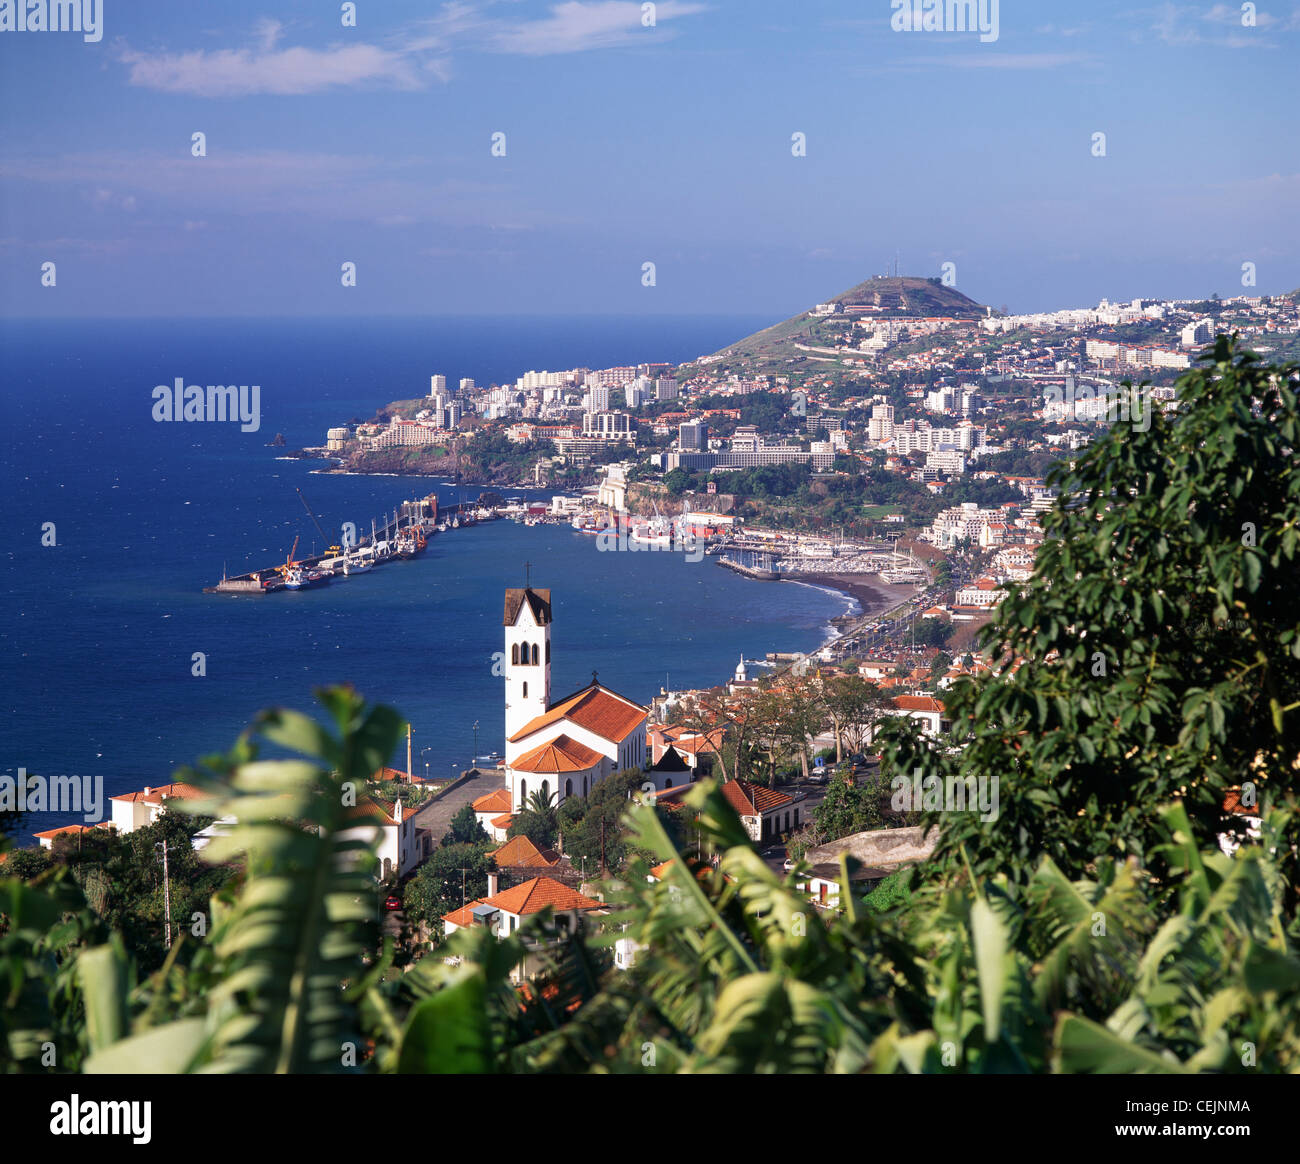 View over Funchal, Madeira, Portugal. - Stock Image